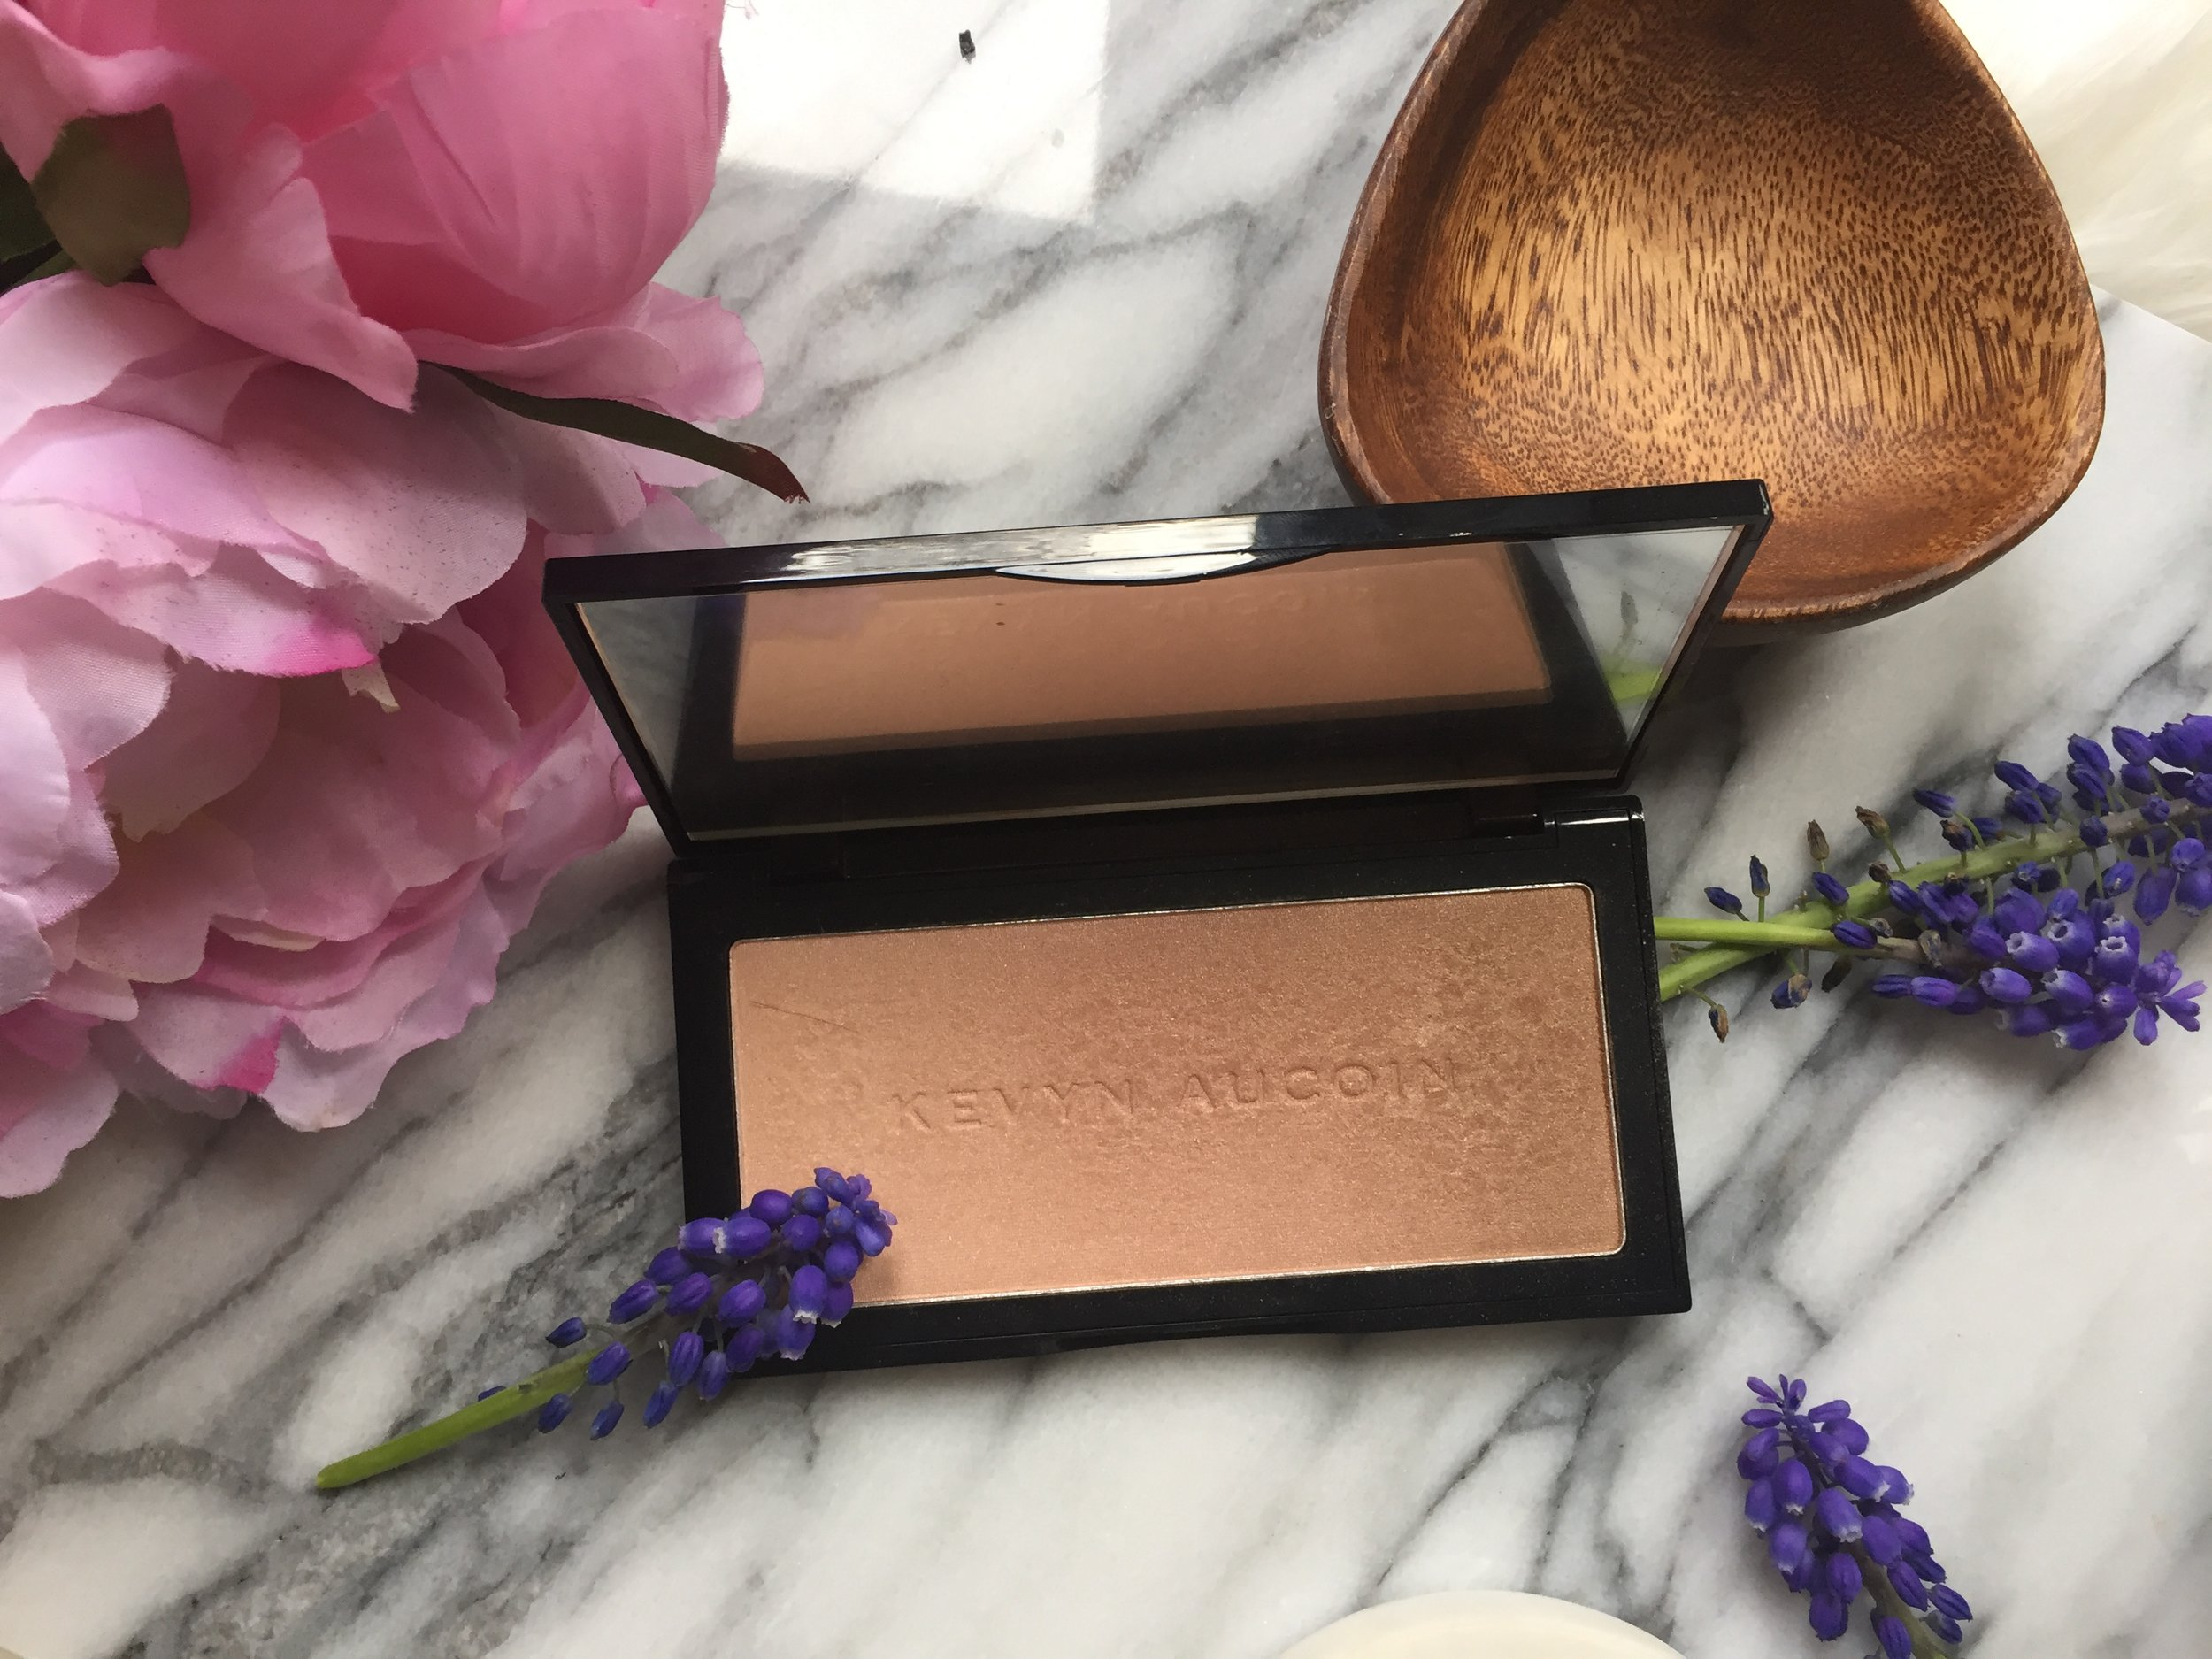 Kevyn Aucoin Neo-Highlighter in Sahara